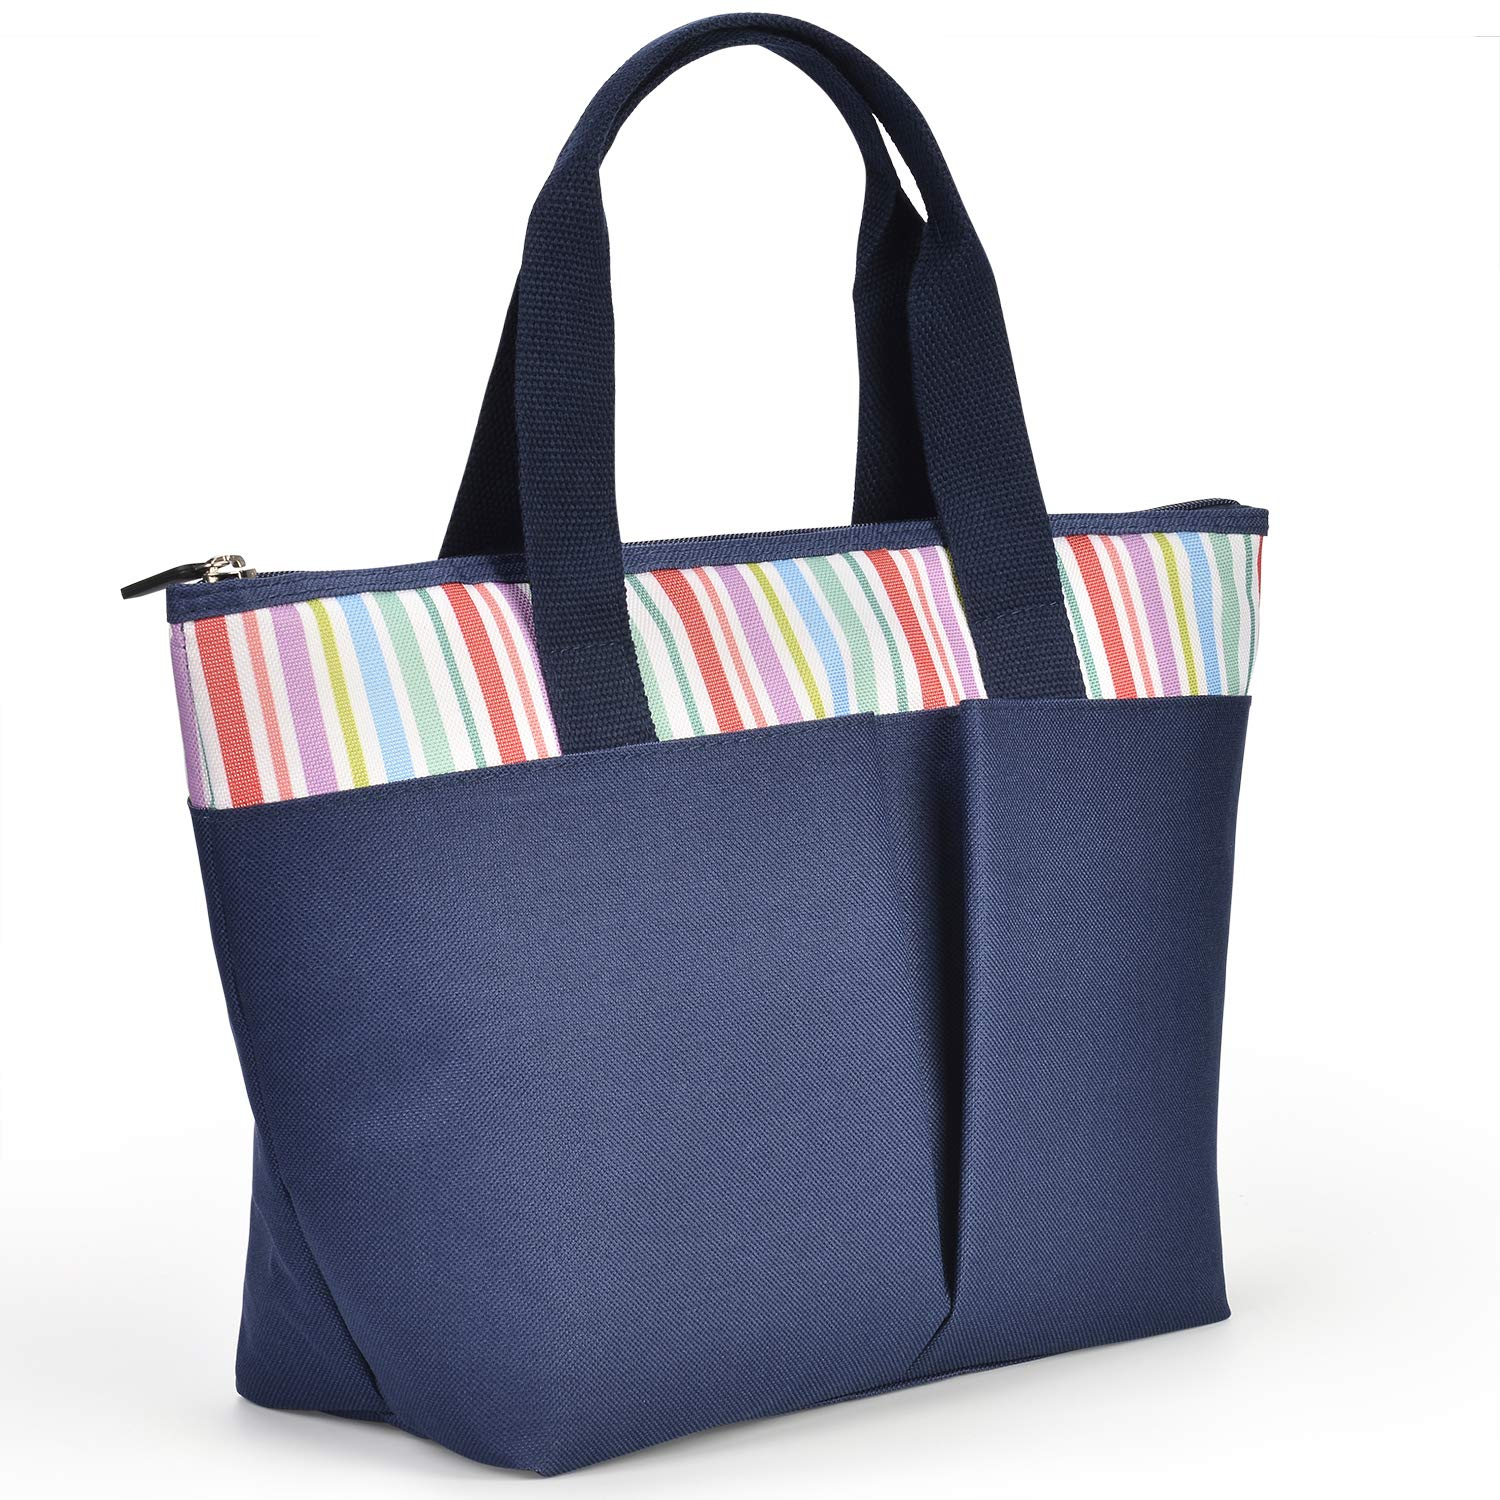 LEADO Insulated Lunch Tote Bag for Women Girls Adults, Reusable Lunch Handbag Large Capacity Zippered Meal Prep Cooler Thermal Lunch Box, Striped Navy Blue